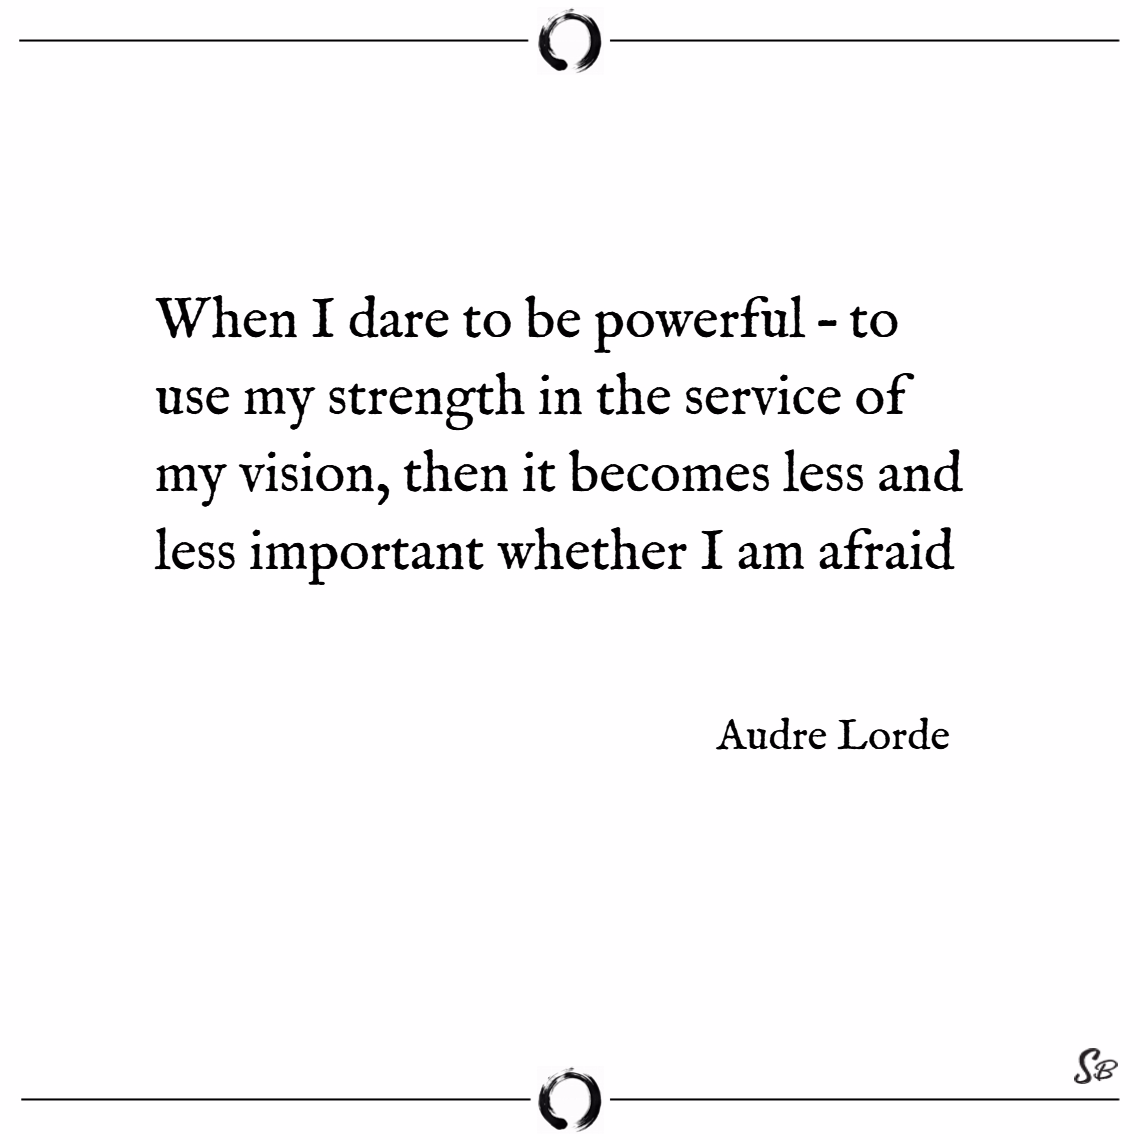 When i dare to be powerful – to use my strength in the service of my vision, then it becomes less and less important whether i am afraid. – audre lorde